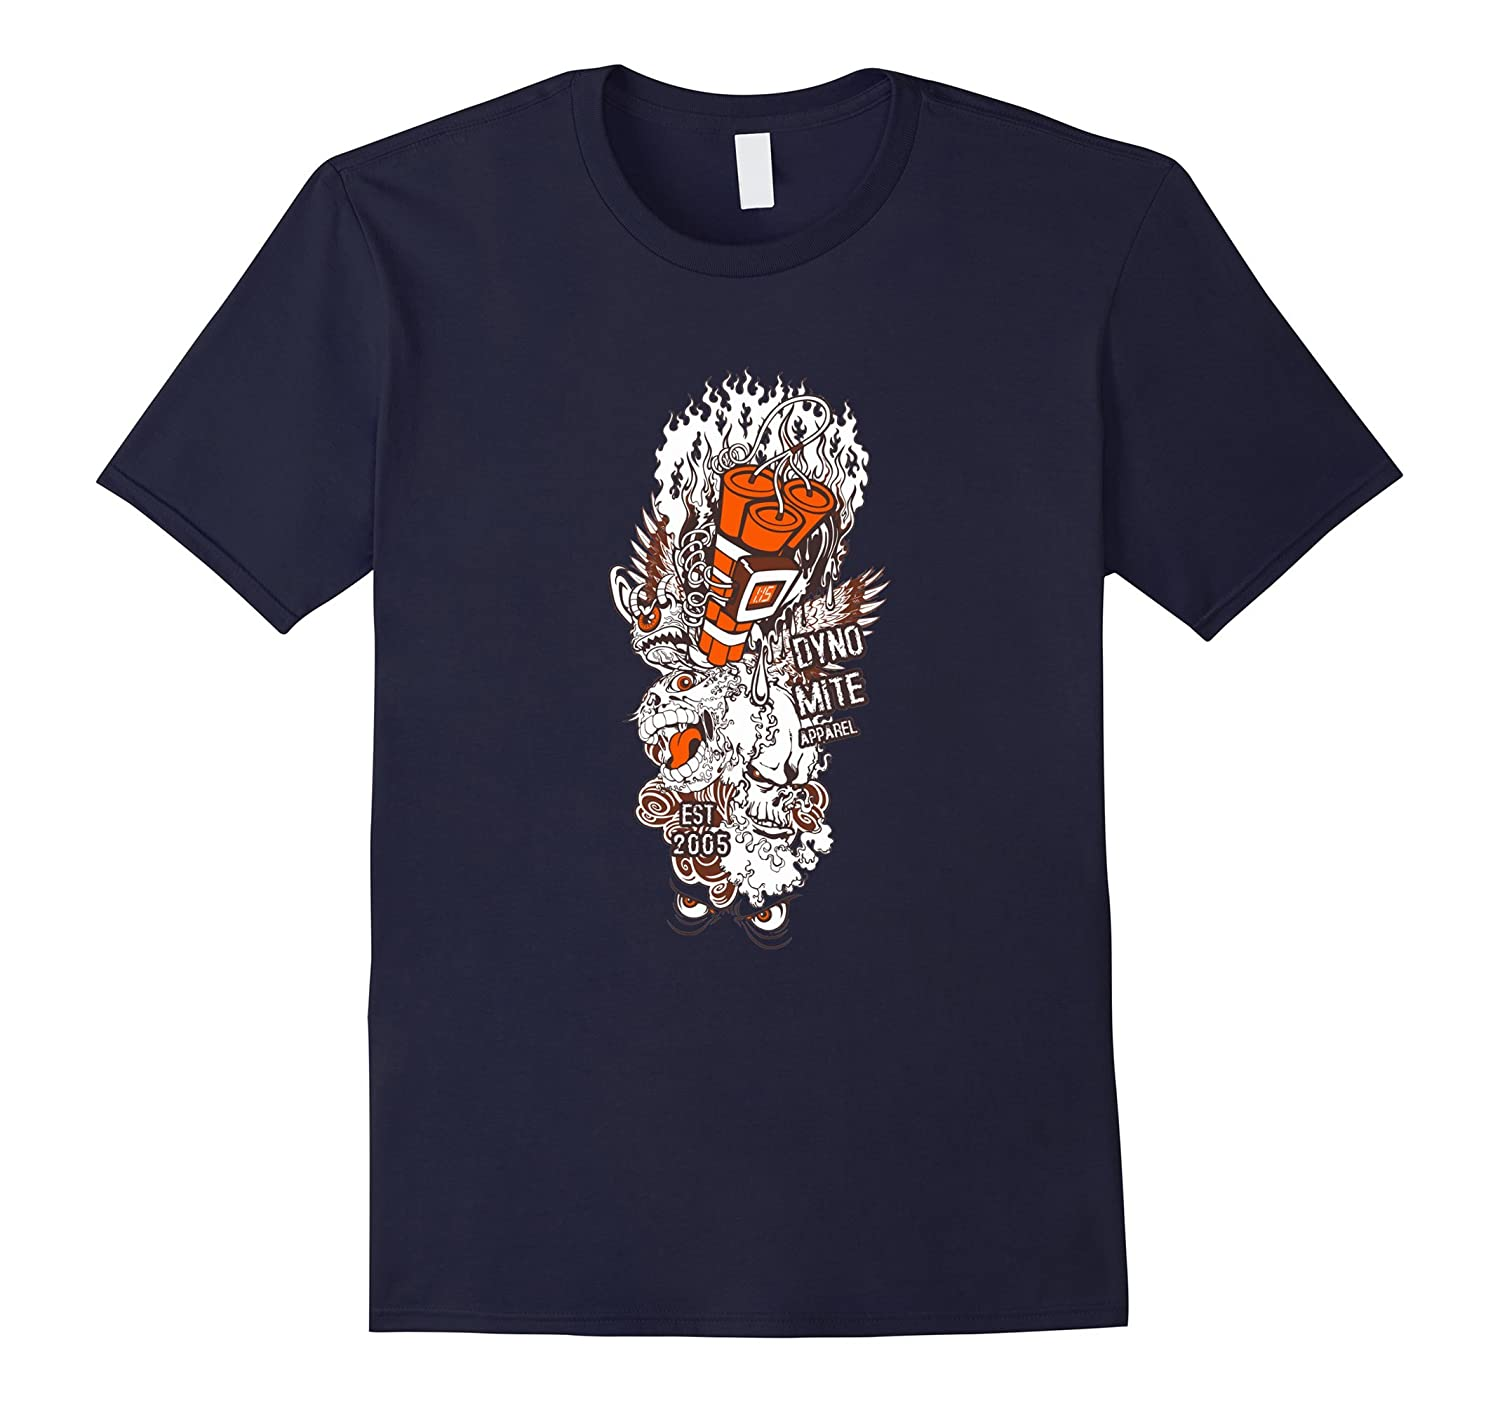 Dyno Mite Apparel T Shirts For Women Graphic Tee For Men-Art